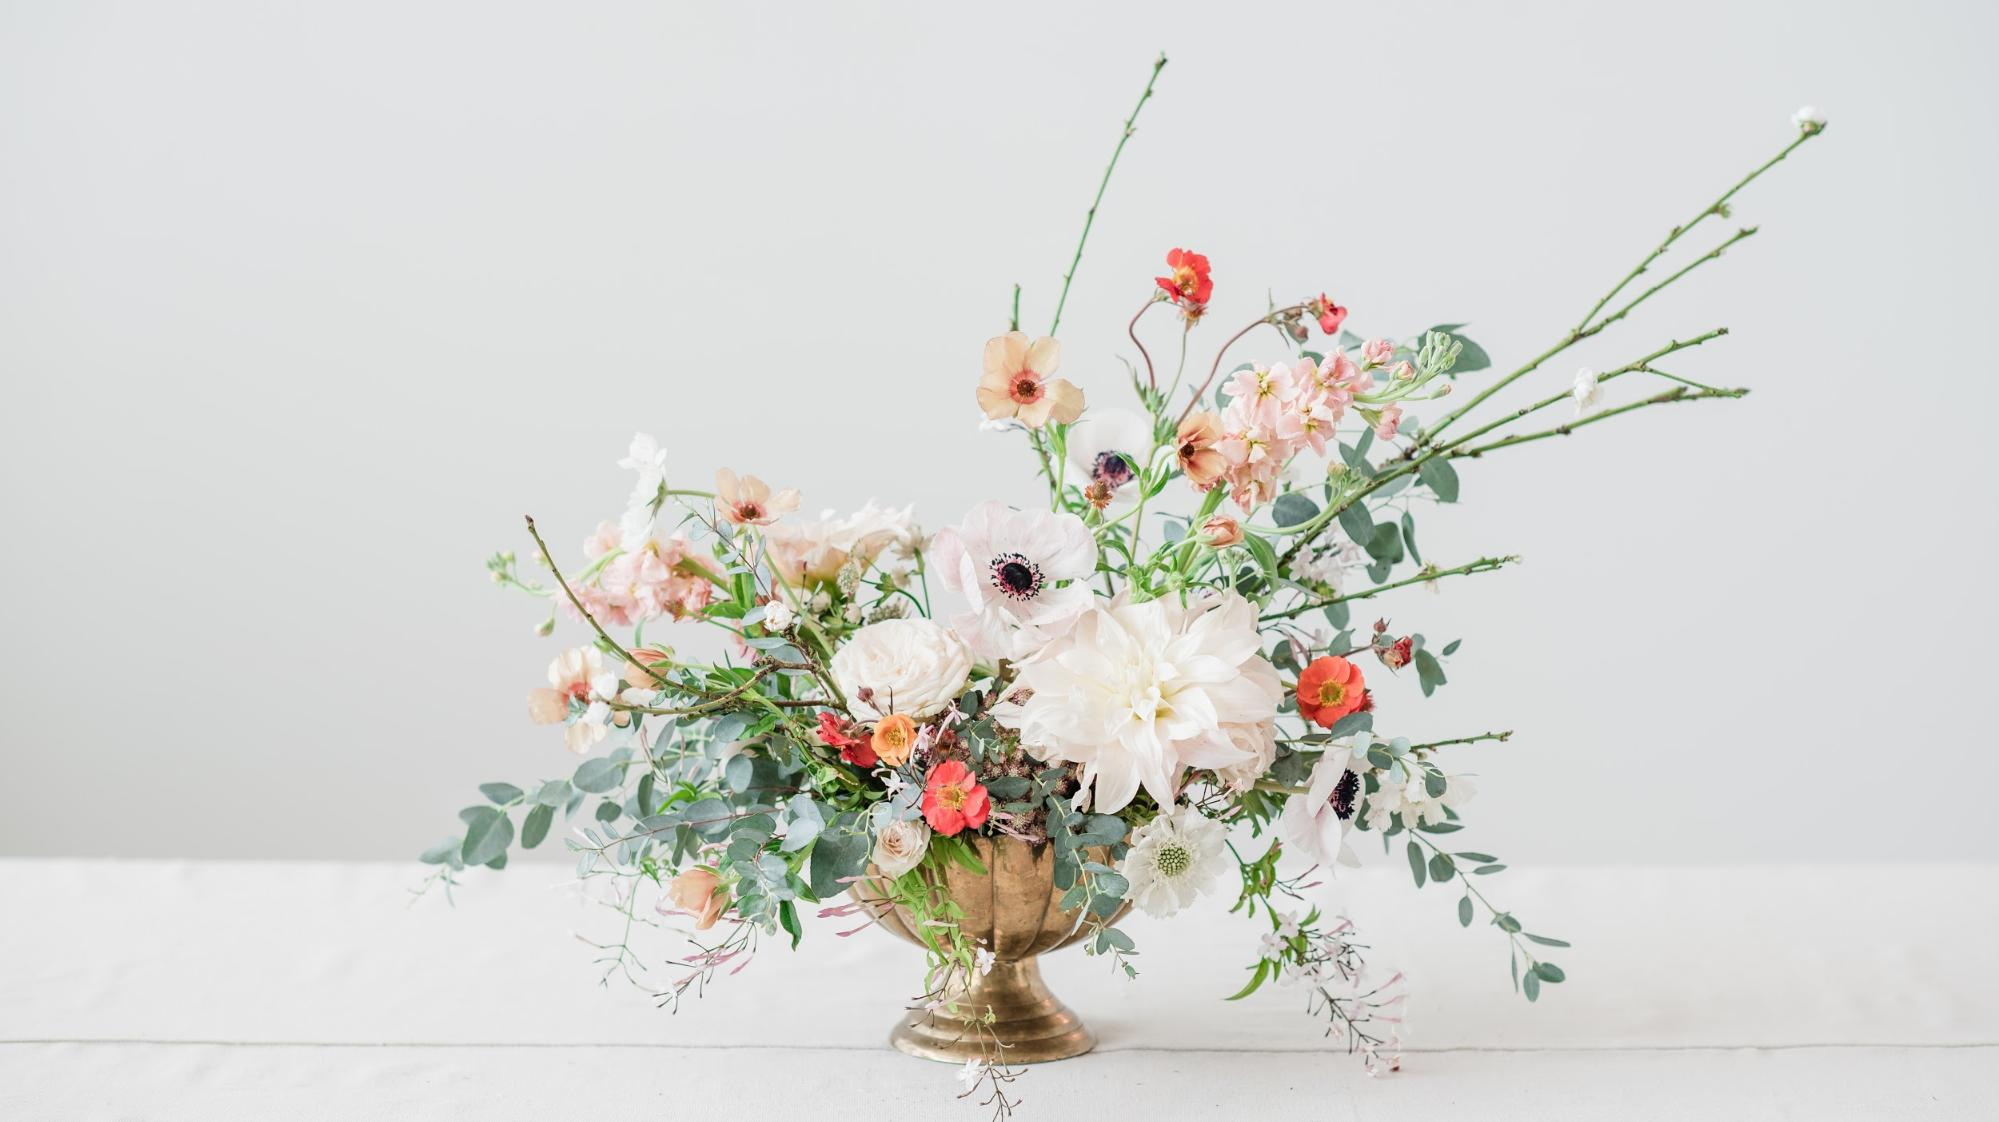 Create Your Own Floral Arrangement Magnolia